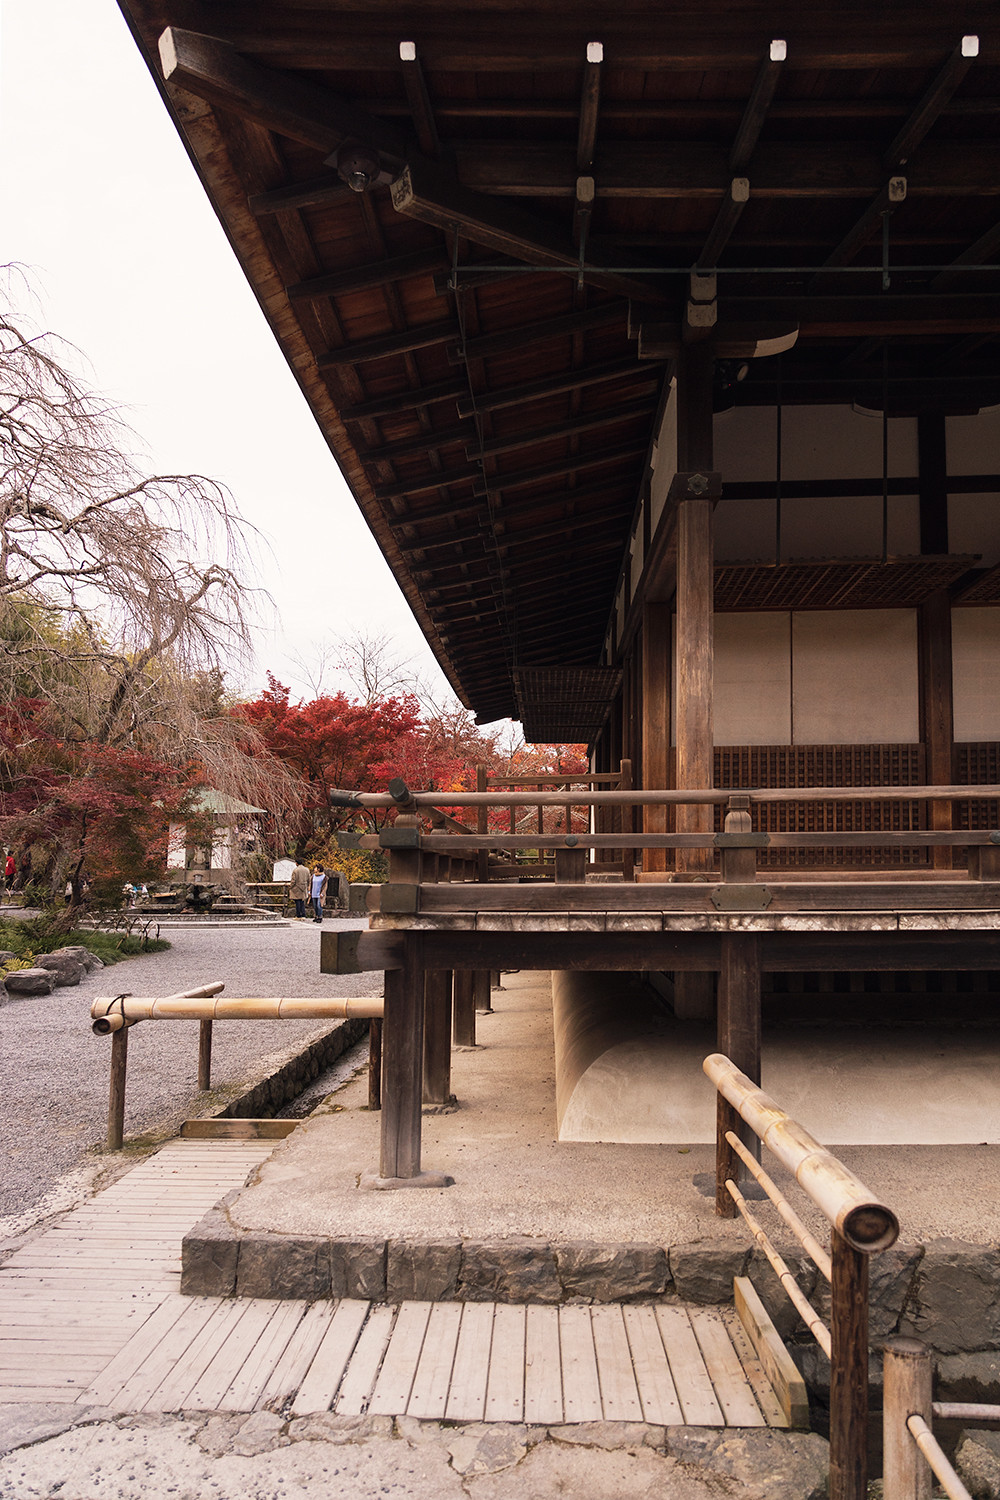 14kyoto-tenryuji-temple-shrine-japan-architecture-travel